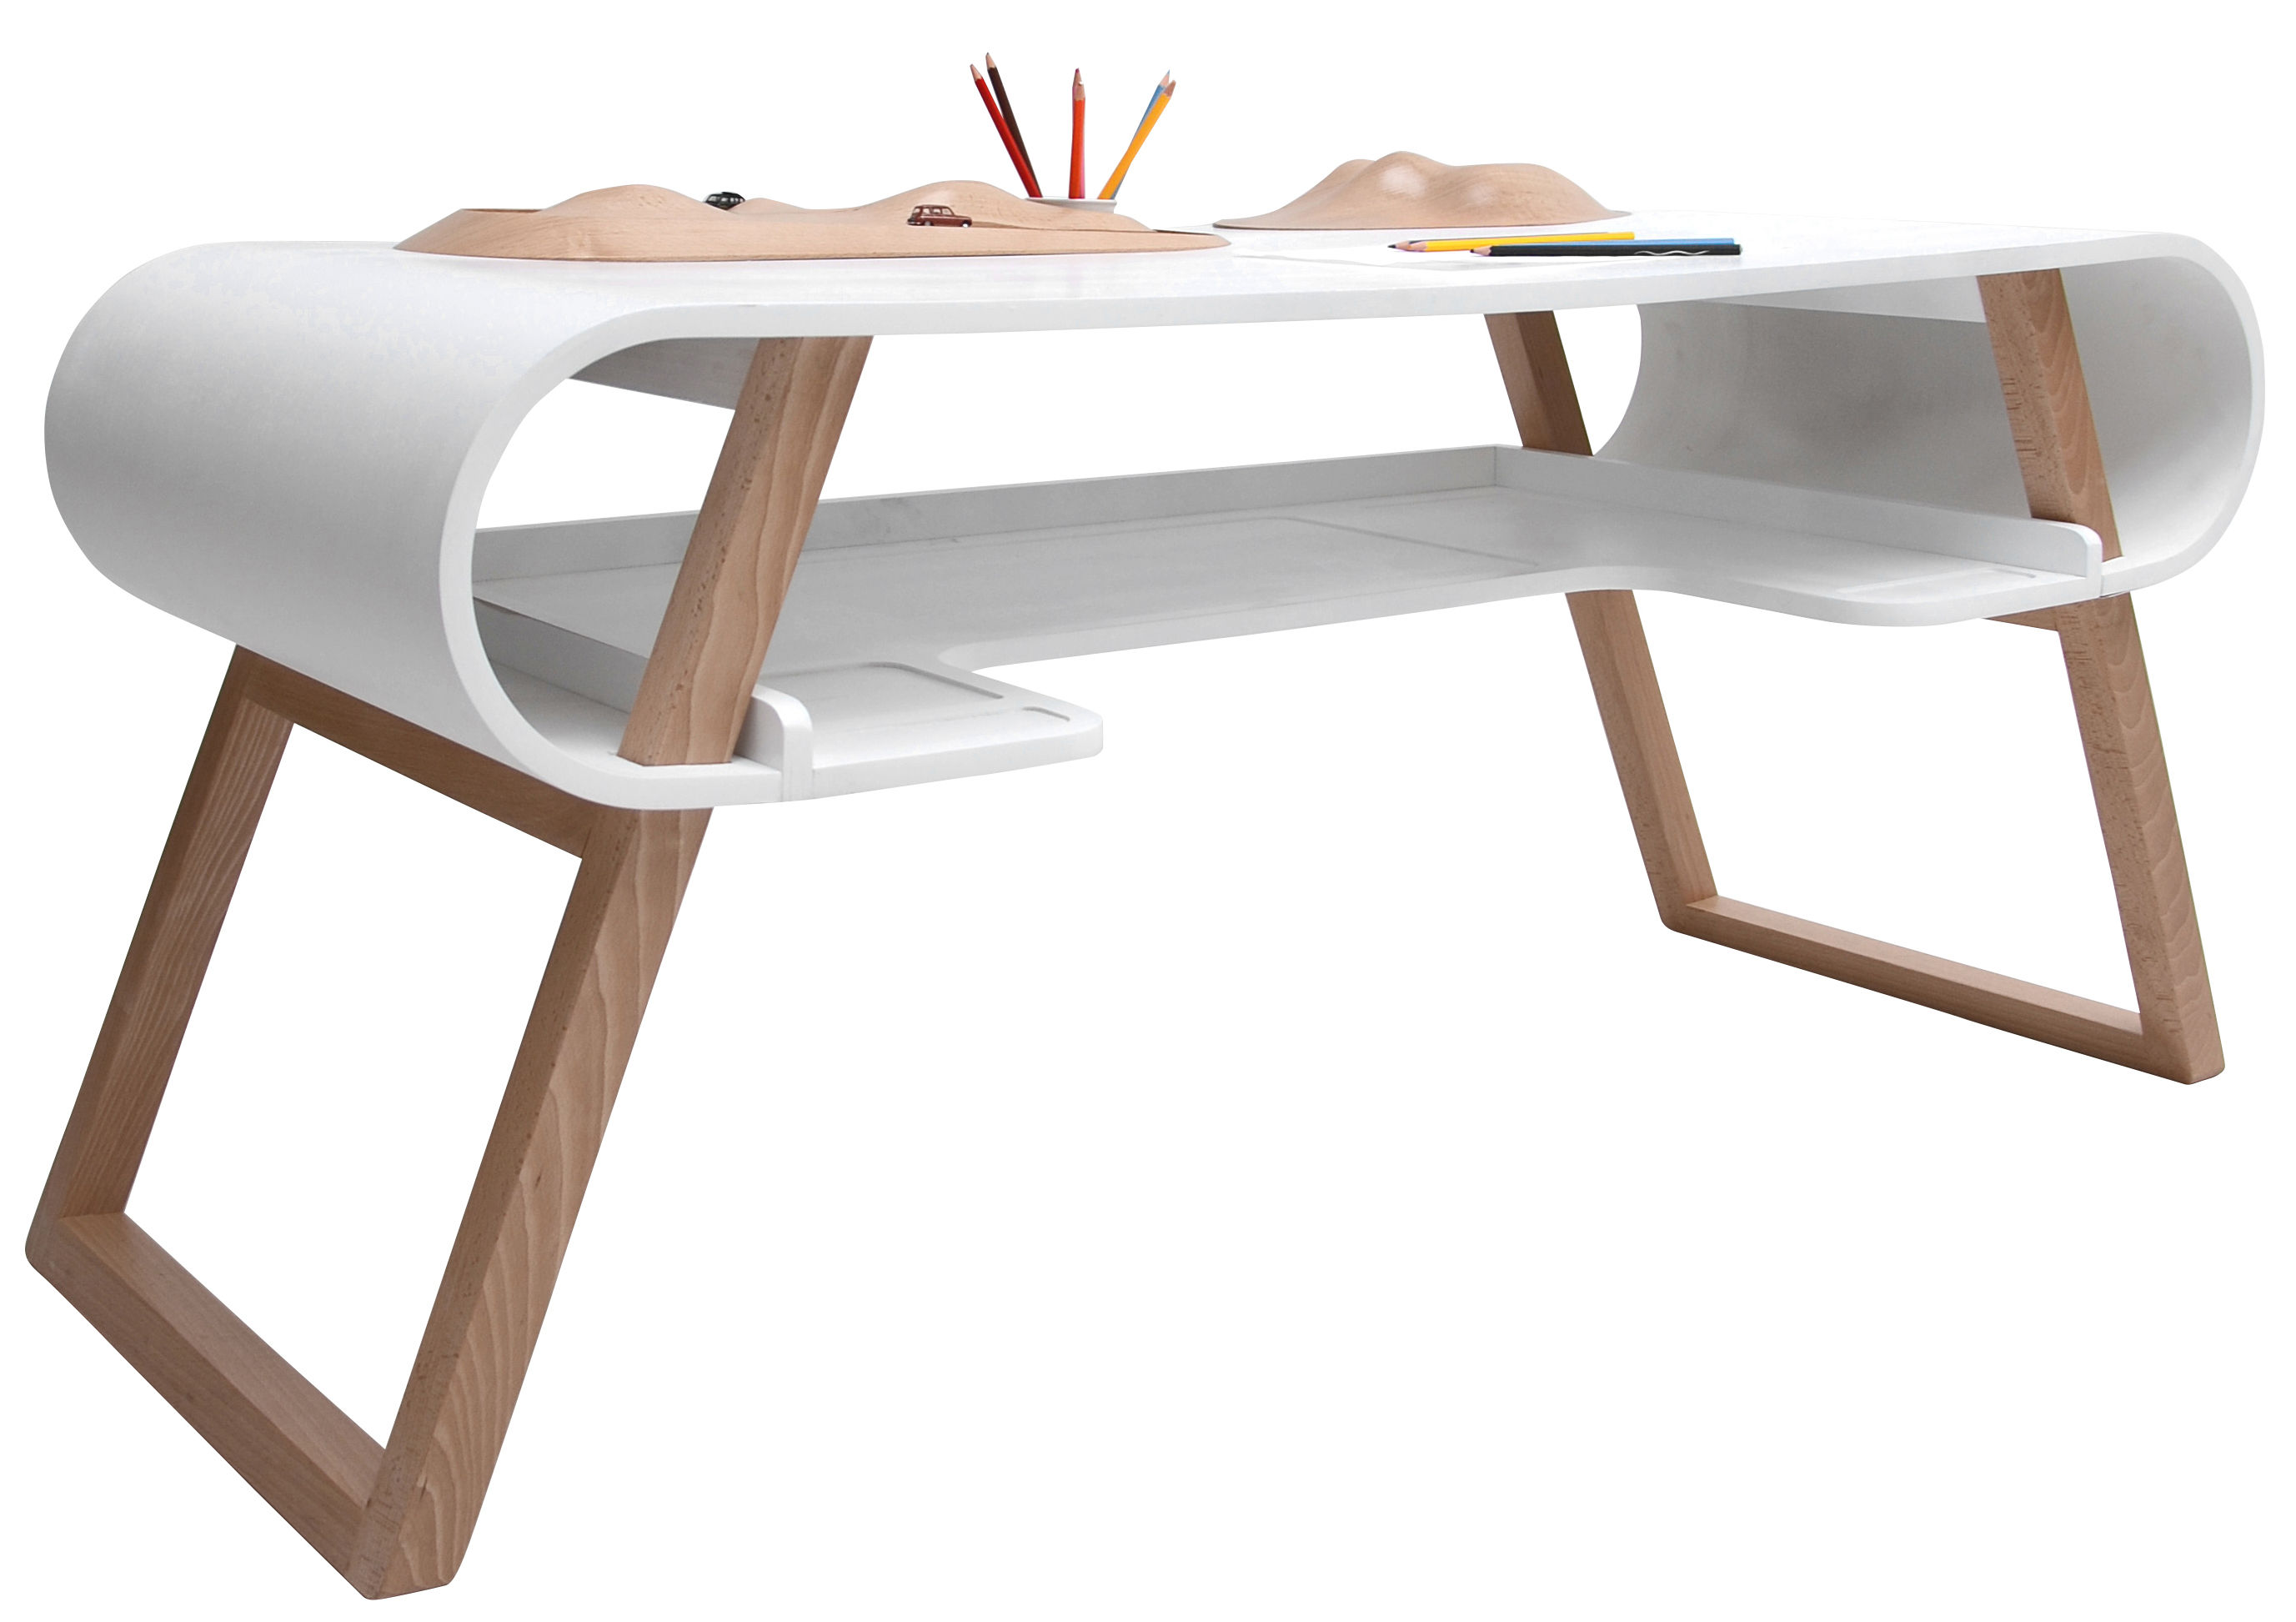 Furniture - Kids Furniture - Rubens Children's desk by Compagnie - White - Curved MDF, Natural beechwood